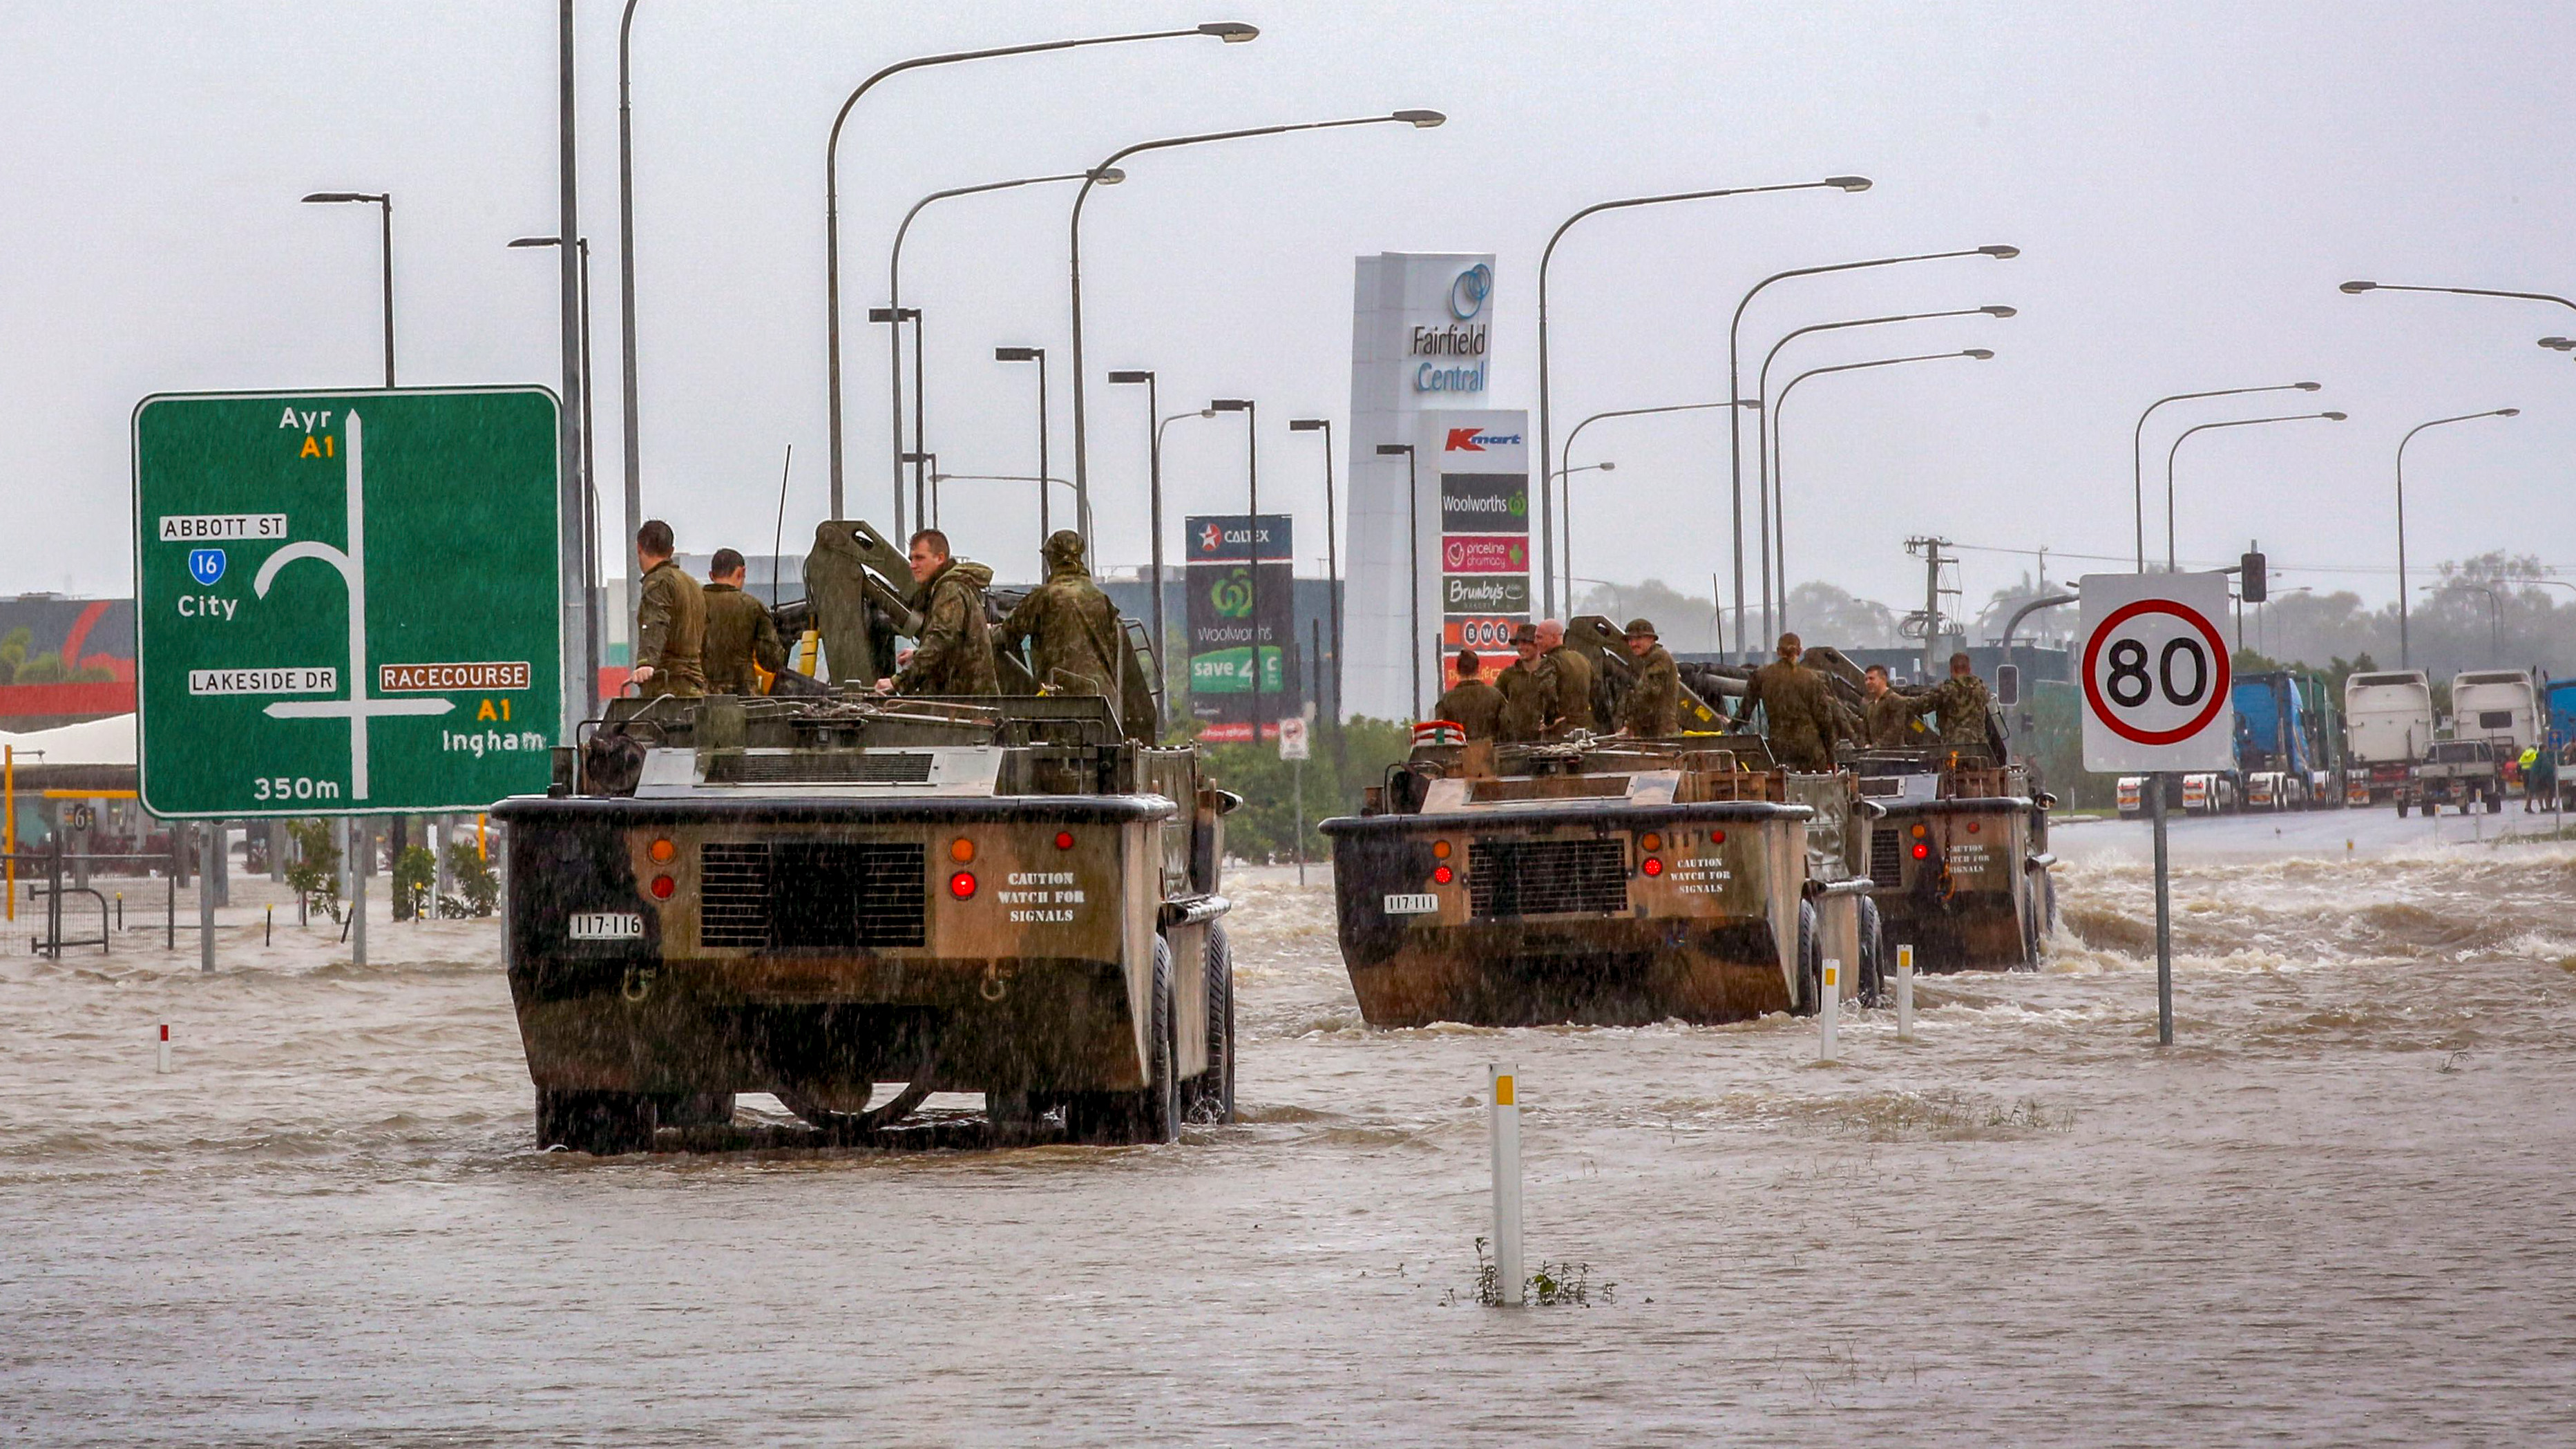 Australian Army vehicles enter Townsville to help evacuate flood-affected people on February 4, 2019, as the recent downpour in Australia's tropical north has seen some areas get a year's worth of rainfall in a week. - Australia's military has been deployed to tackle devastating